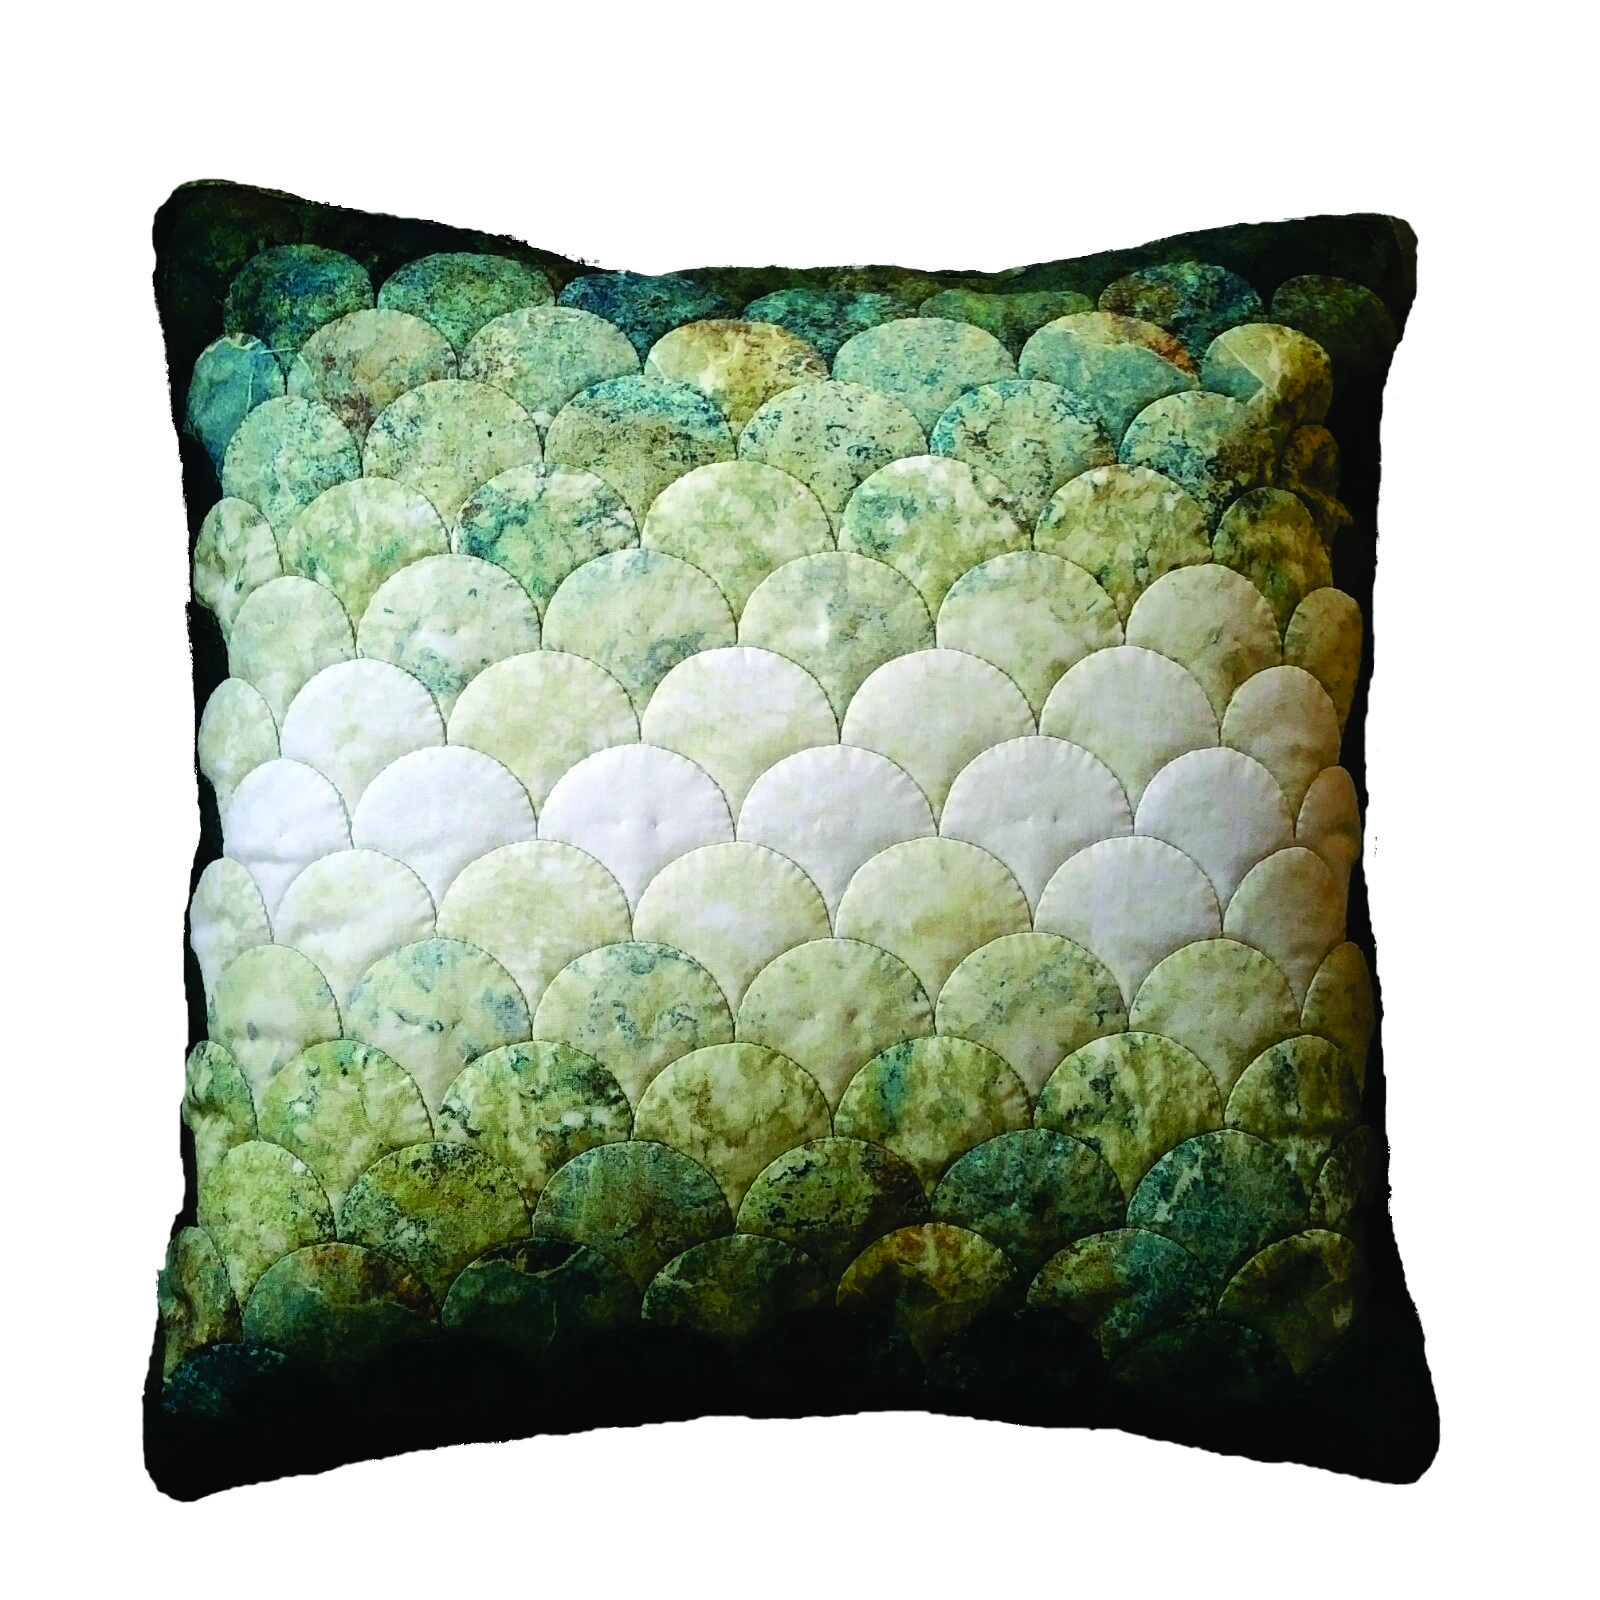 WKW.18d - Captivating Clamshell Cushion  - WORKSHOP